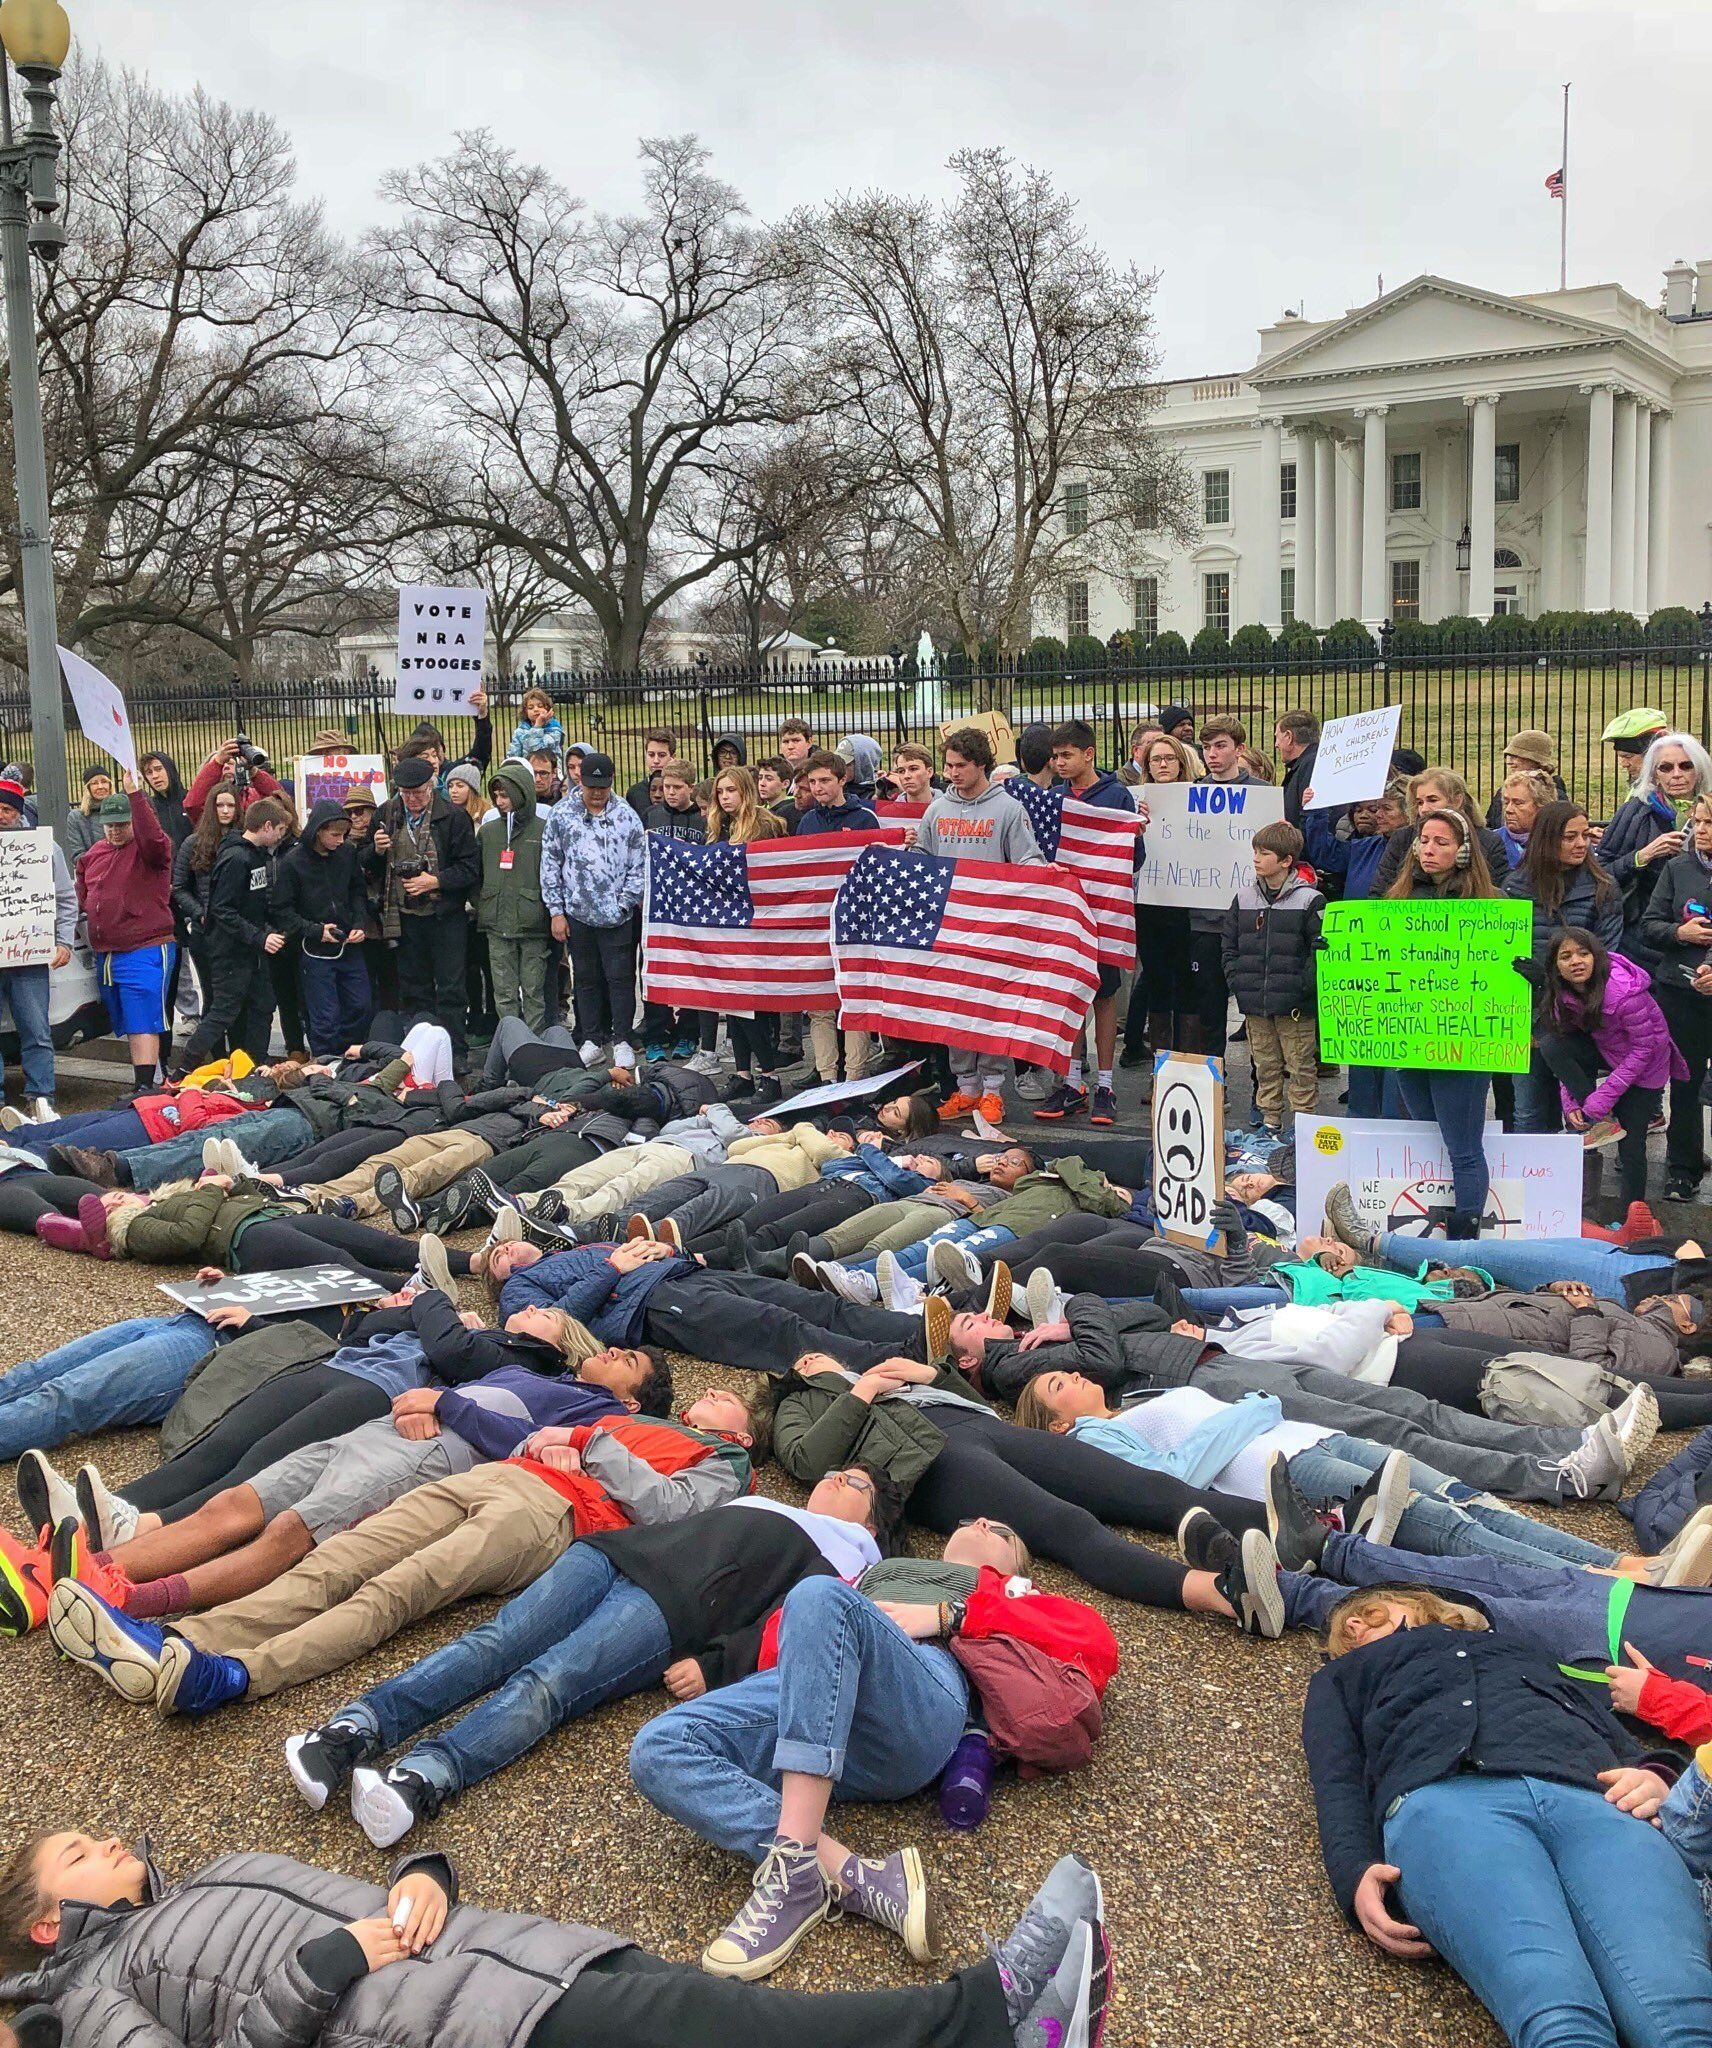 Excessive Faculty College students Lead Protest In opposition to Gun Violence In Entrance Of White Home